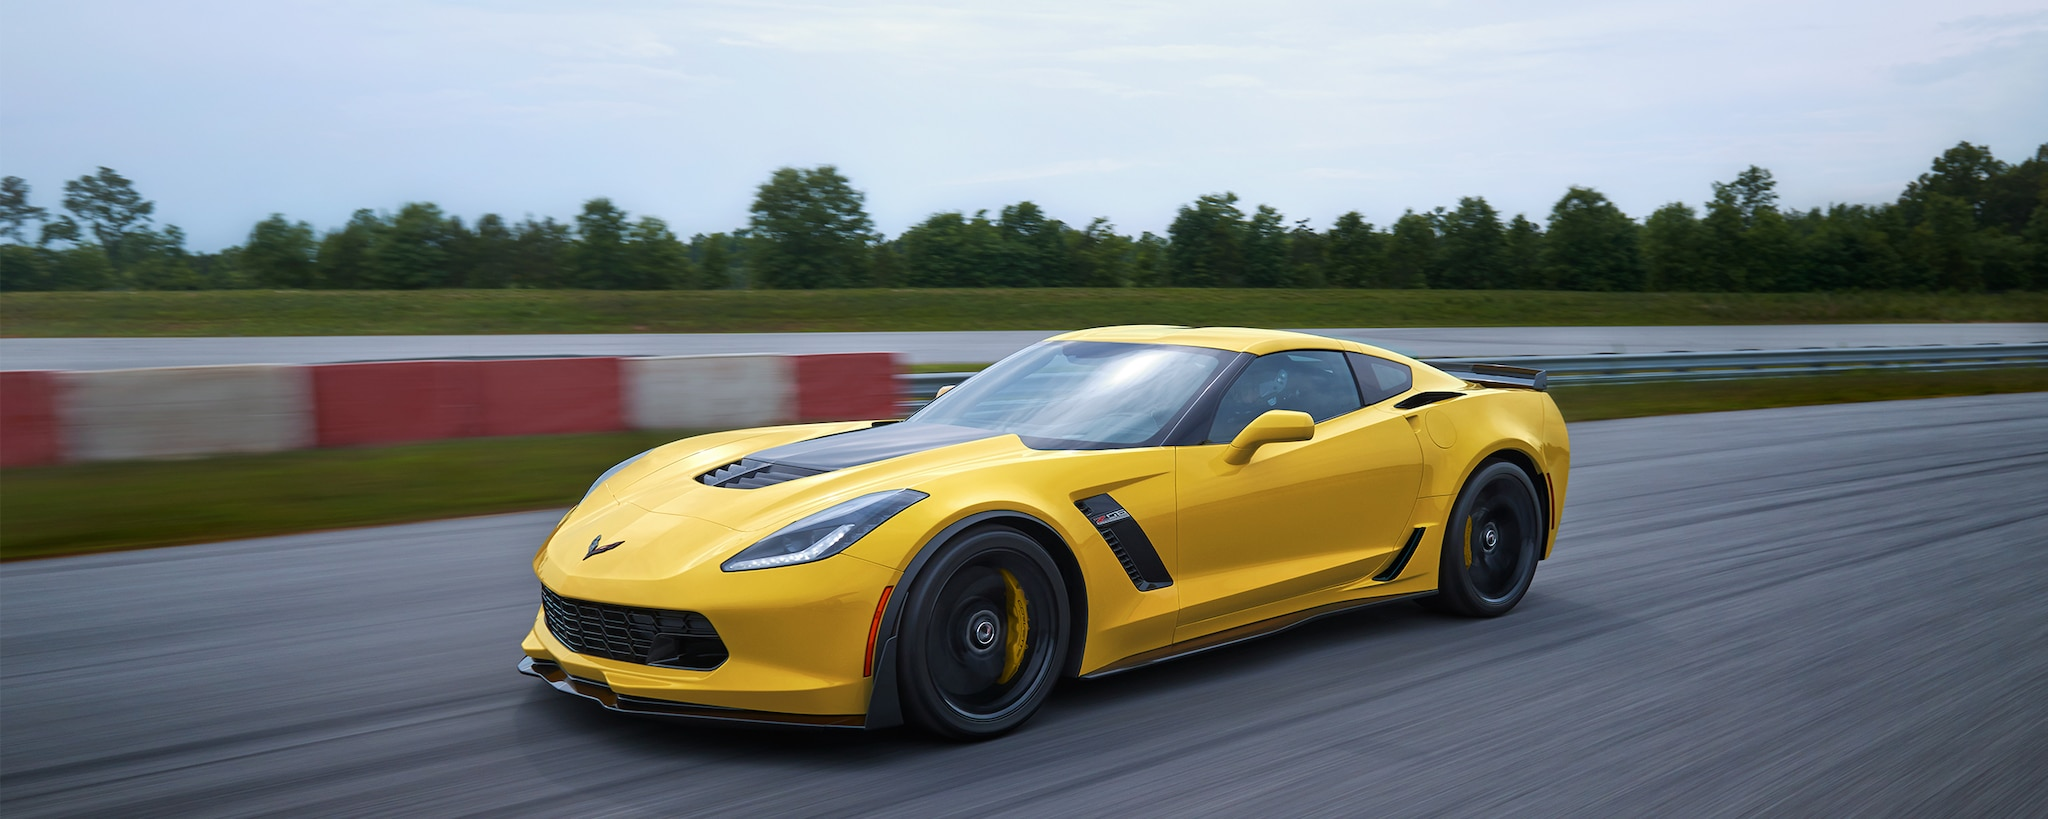 Superauto Corvette Z06 2018